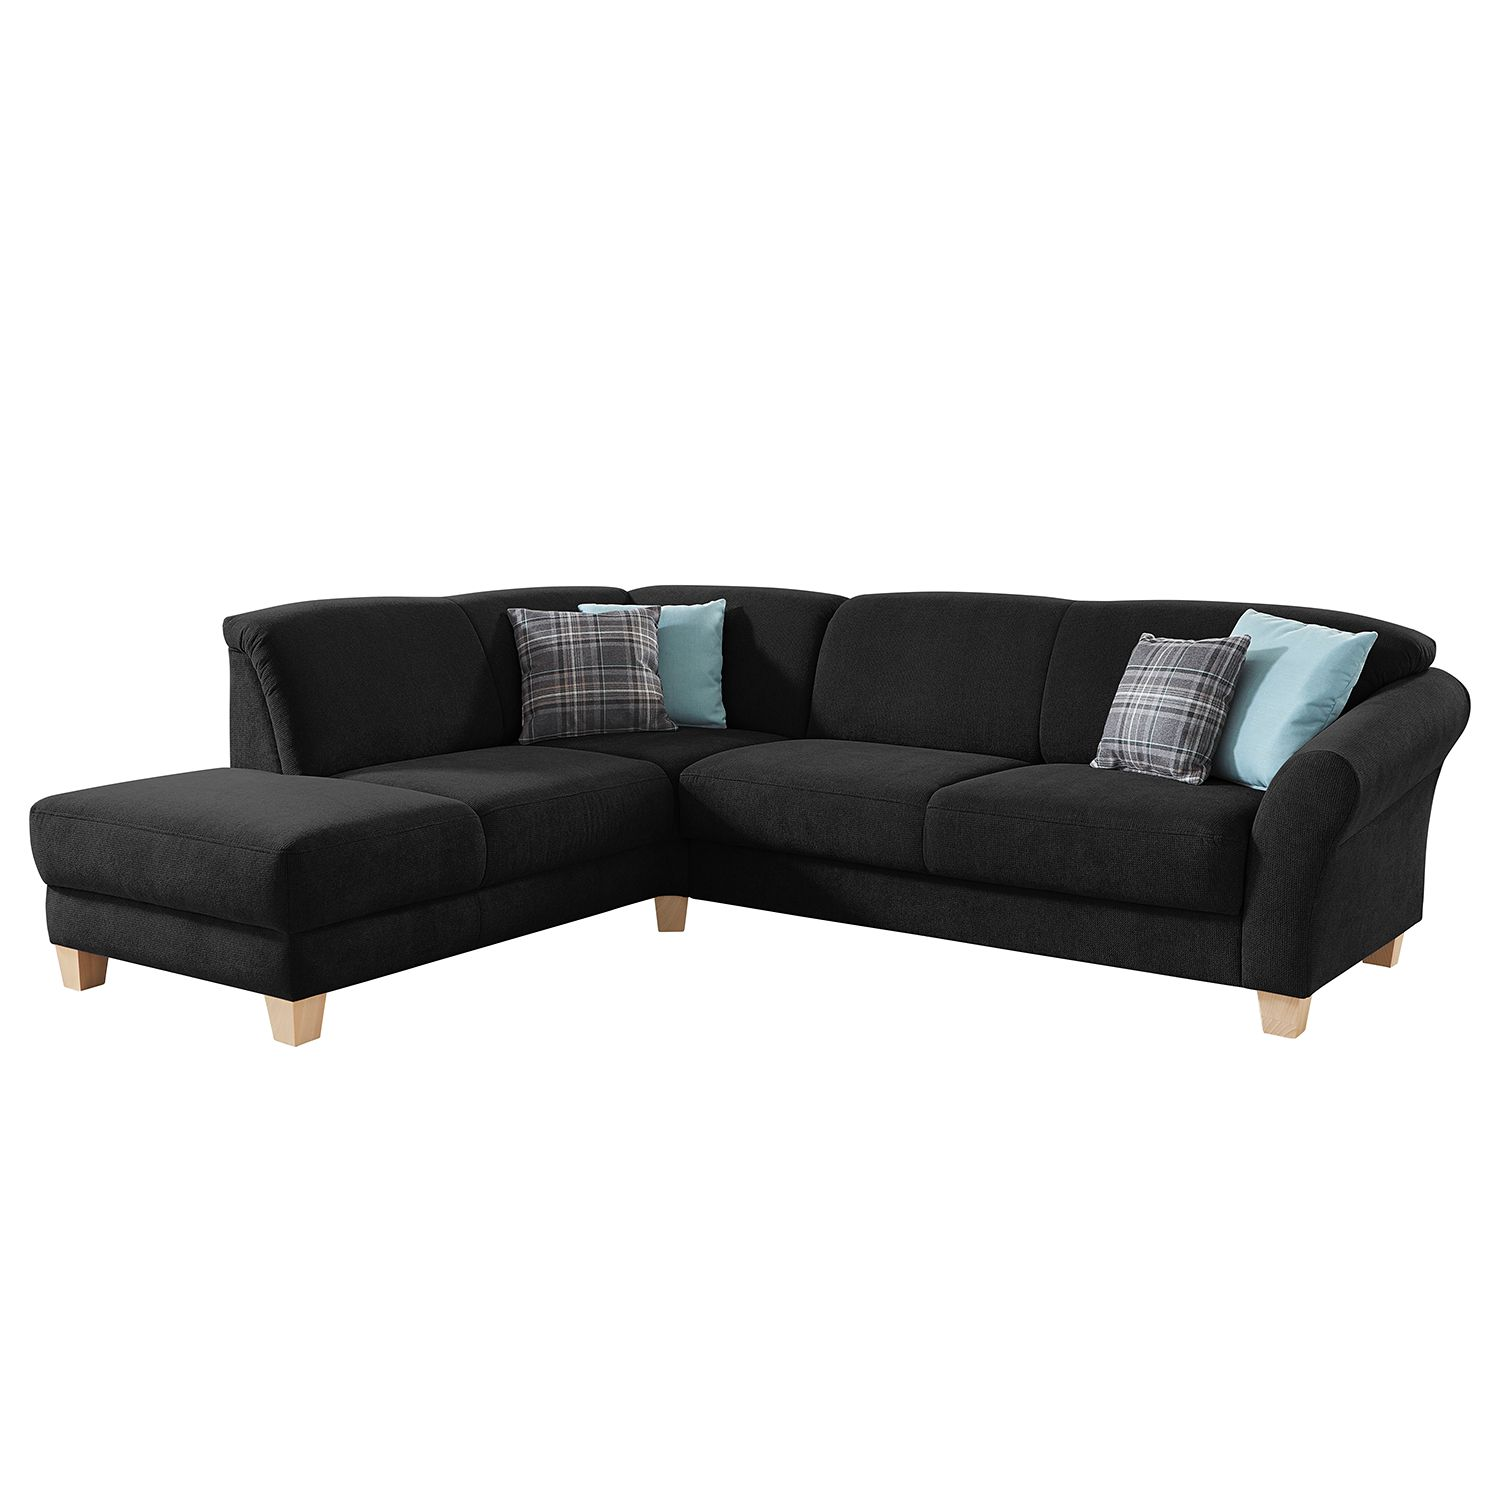 ecksofa mit sitztiefenverstellung inspirierendes design f r wohnm bel. Black Bedroom Furniture Sets. Home Design Ideas